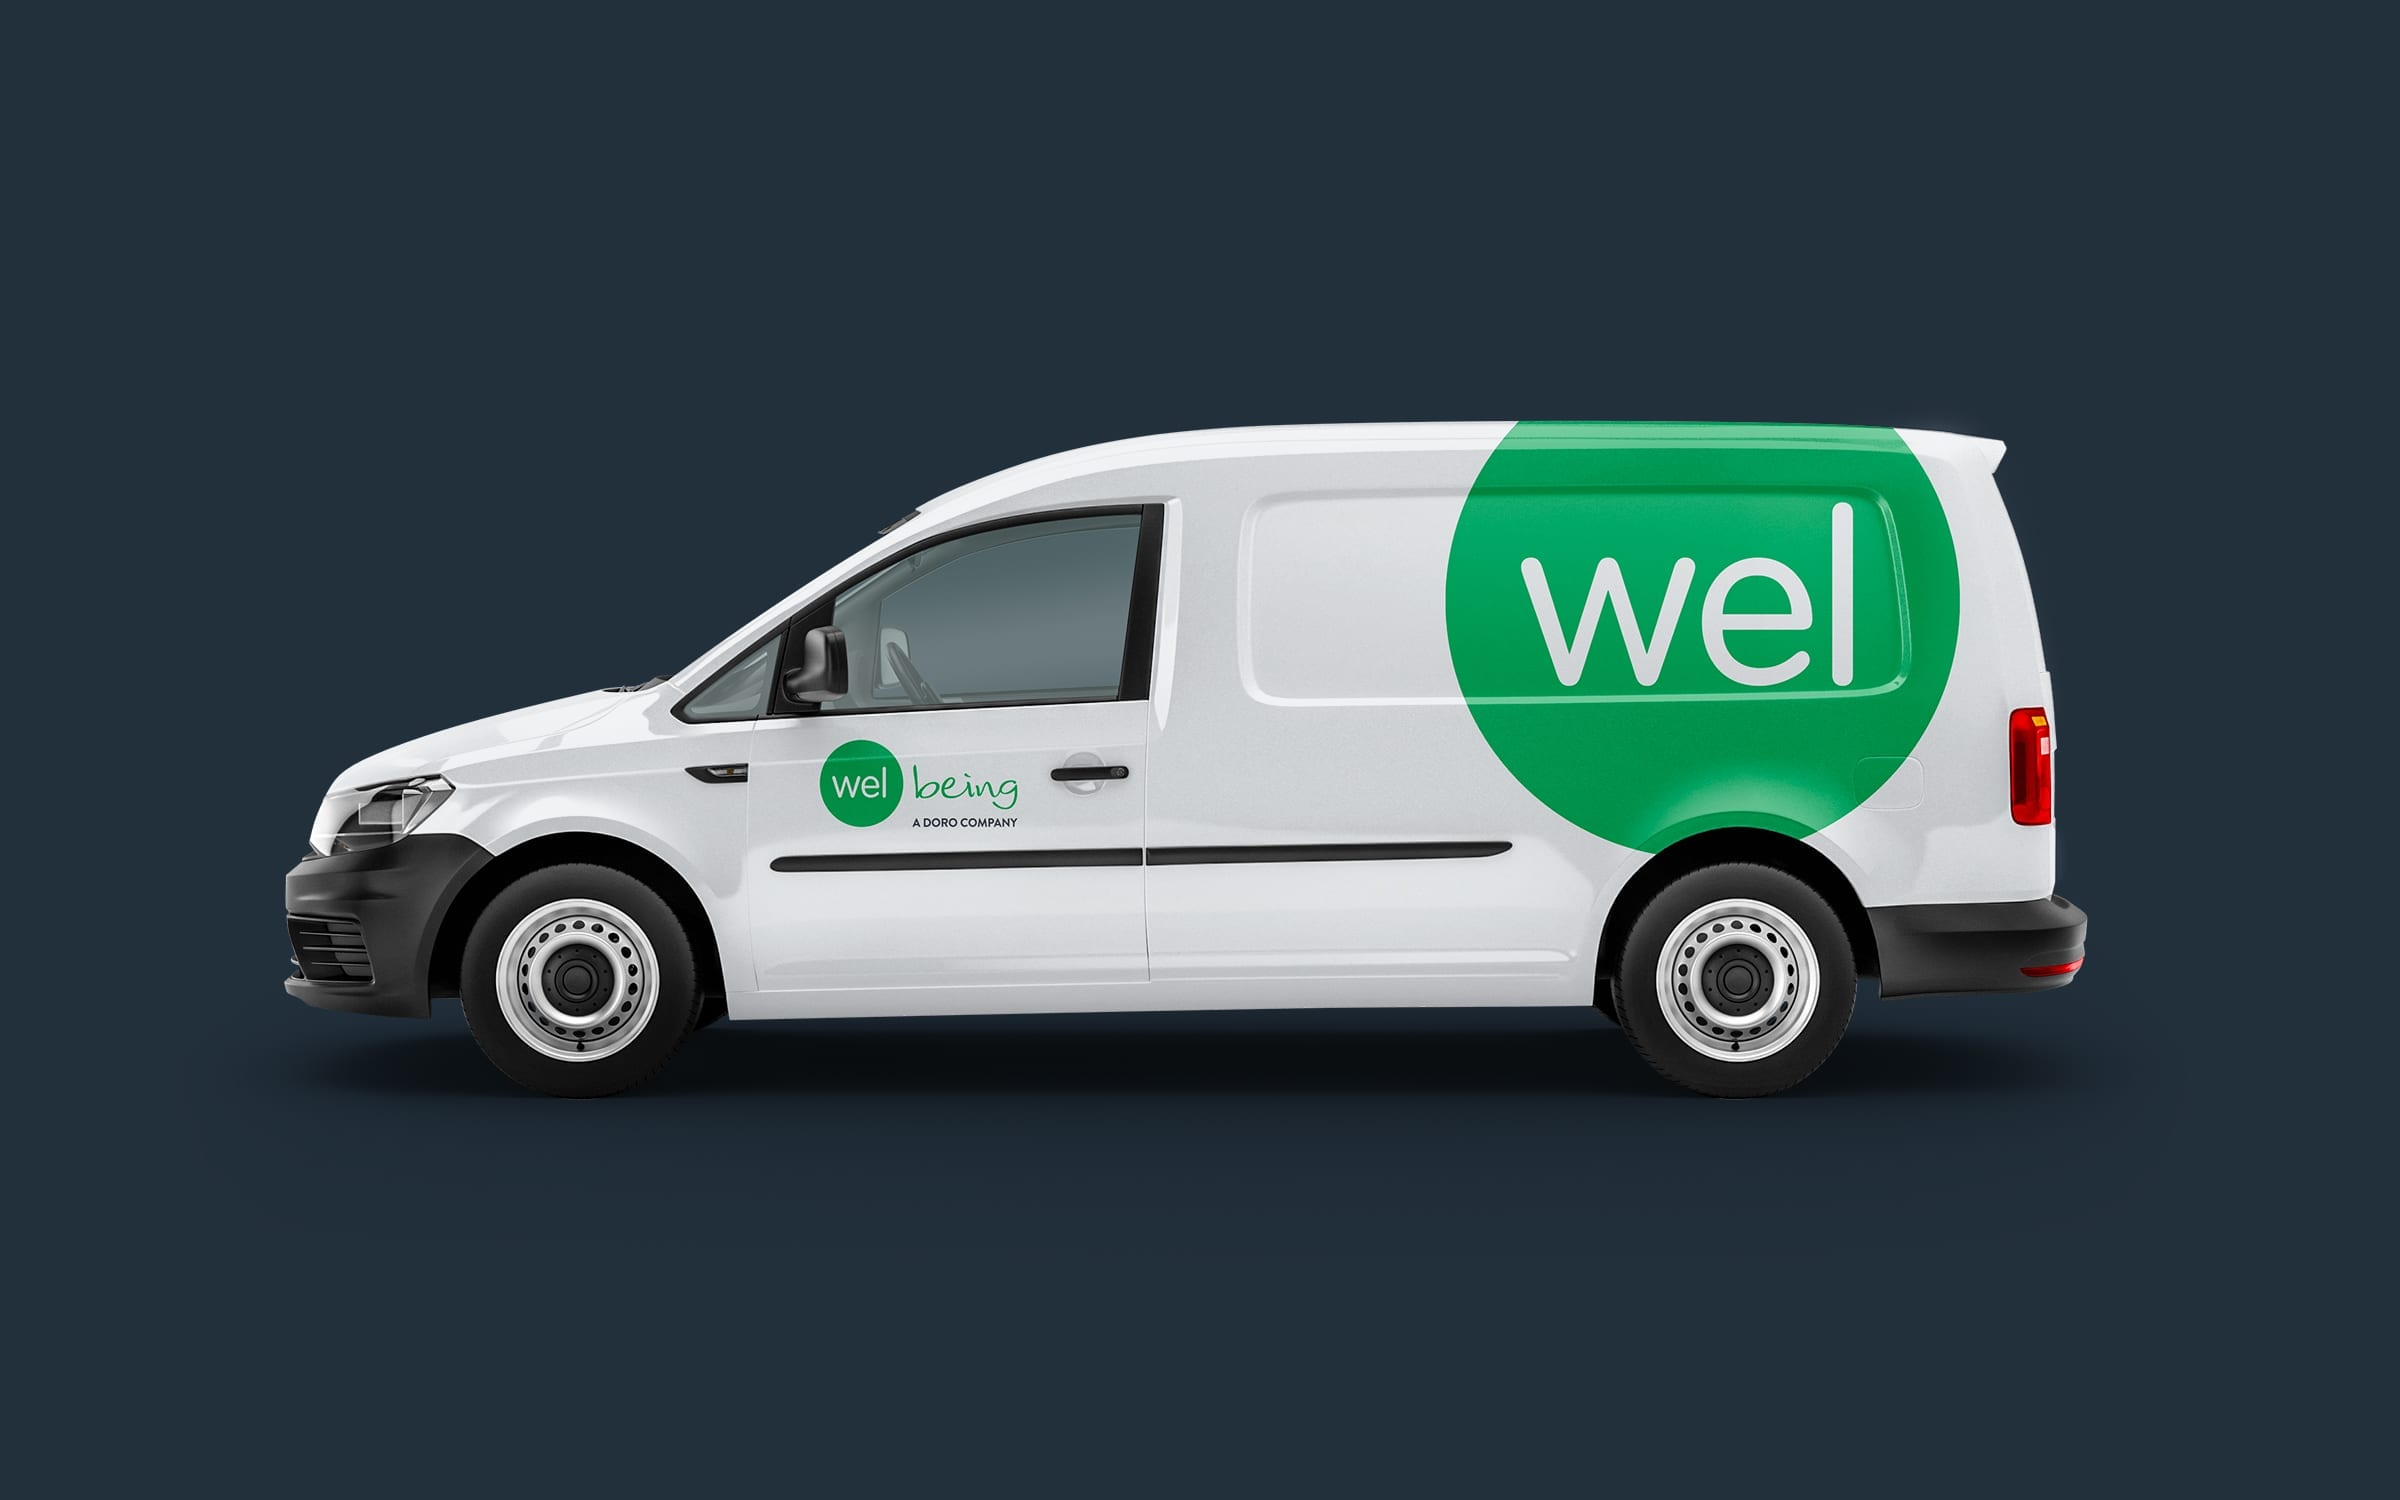 Welbeing vehicle livery